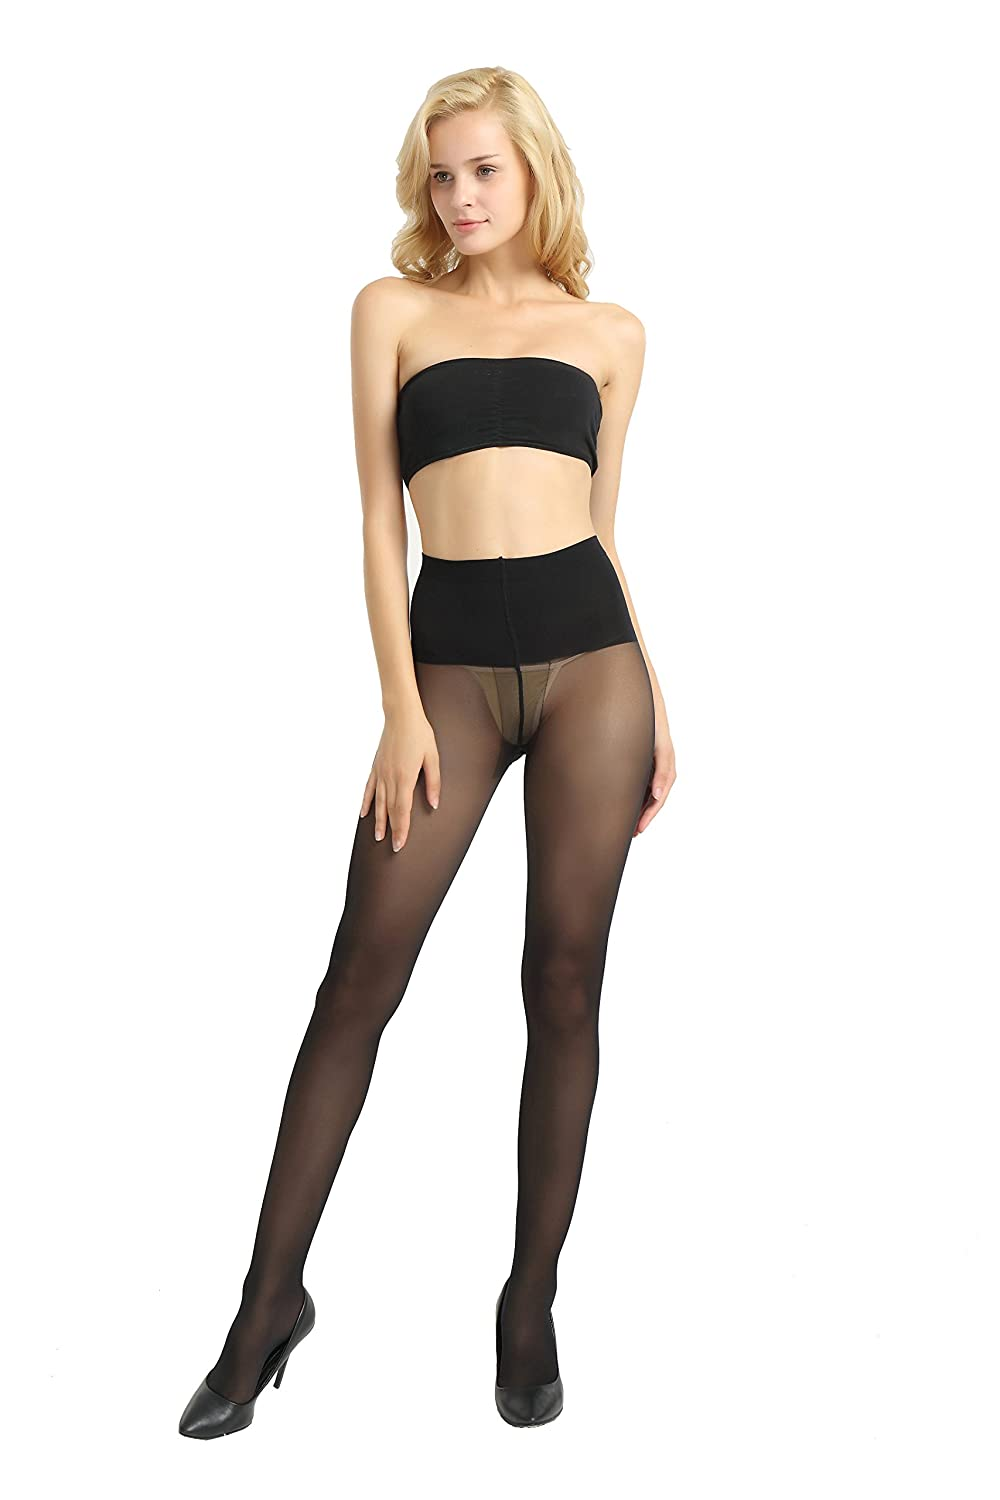 Alice & Belle Women 40 Den Pantyhose, Soft Tights with Sheer Toe